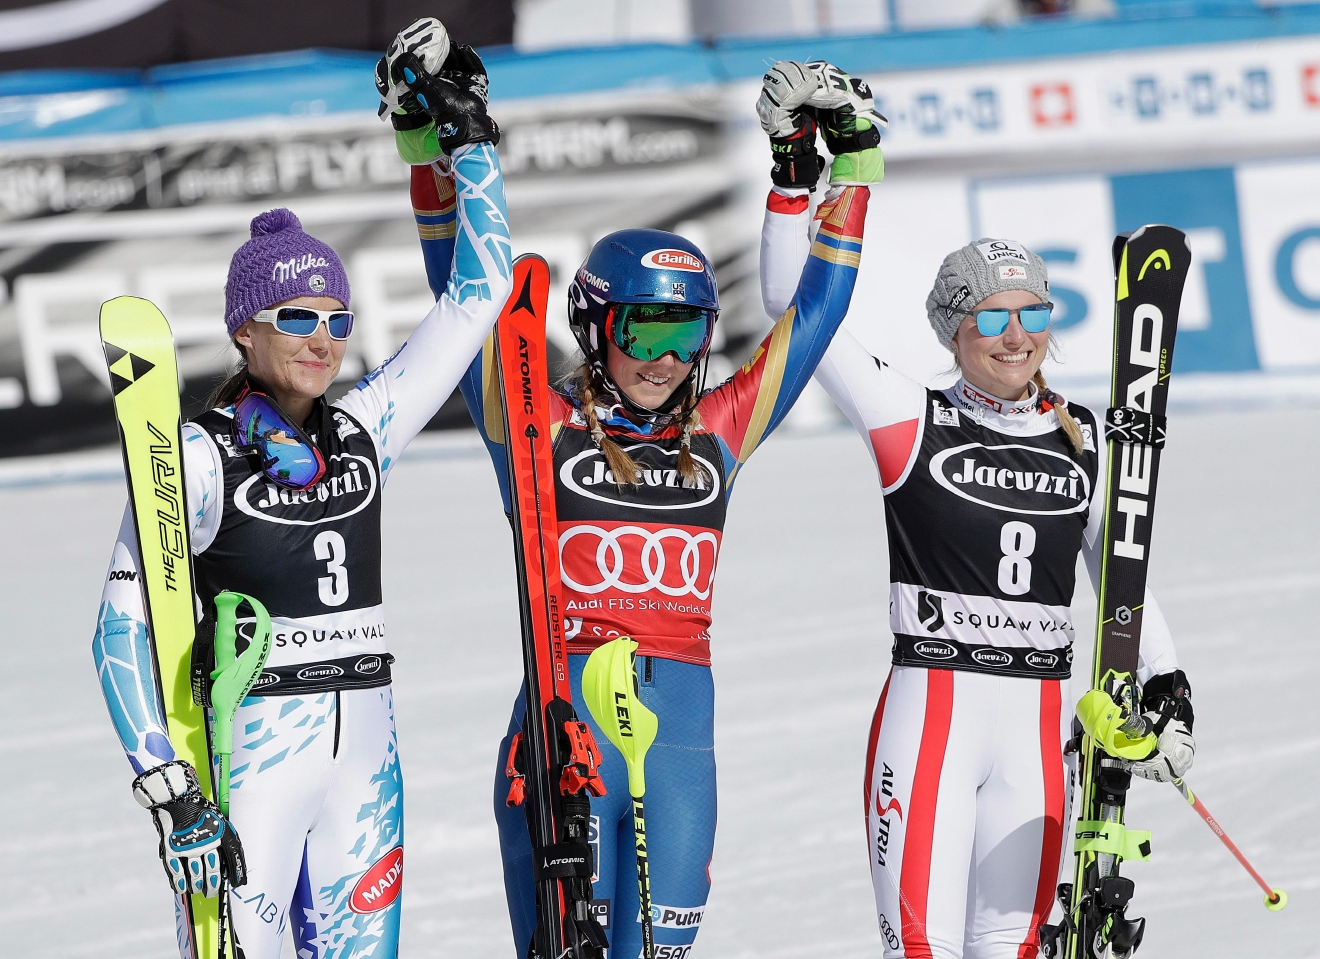 Mikaela Shiffrin, center, celebrates after winning the women's World Cup slalom competition with Sarka Strachova, of the Czech Republic, left, and Bernadette Schild, of Austria, Saturday, March 11, 2017, in Olympic Valley, Calif. Strachova finished second and Schild finished third. (AP Photo/Marcio Jose Sanchez)